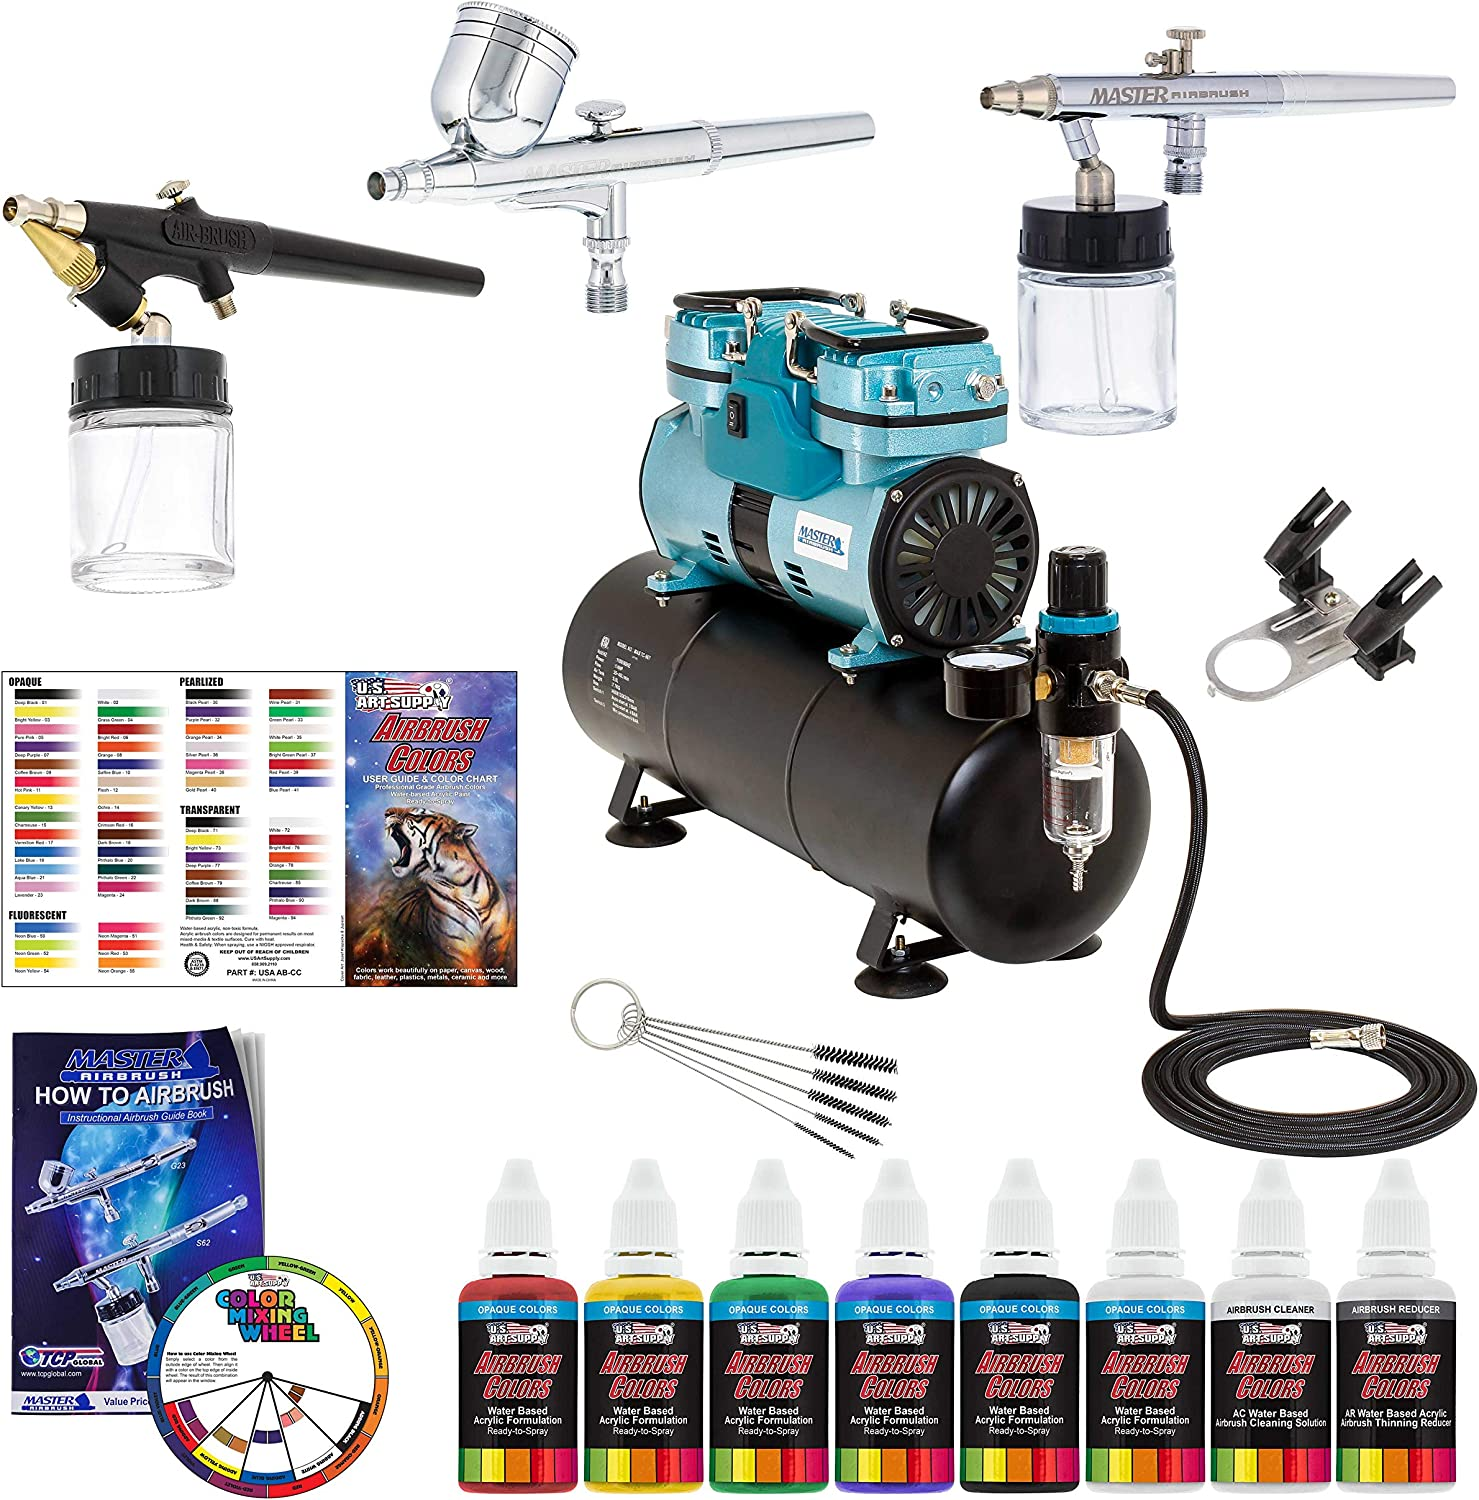 Powerful Master Airbrush Airbrushing System with 3 Airbrushes, 6 U.S. Art Supply Primary Colors Acrylic Paint Set - Cool Running 1/4 hp Twin Cylinder Piston Air Compressor with Air Storage Tank